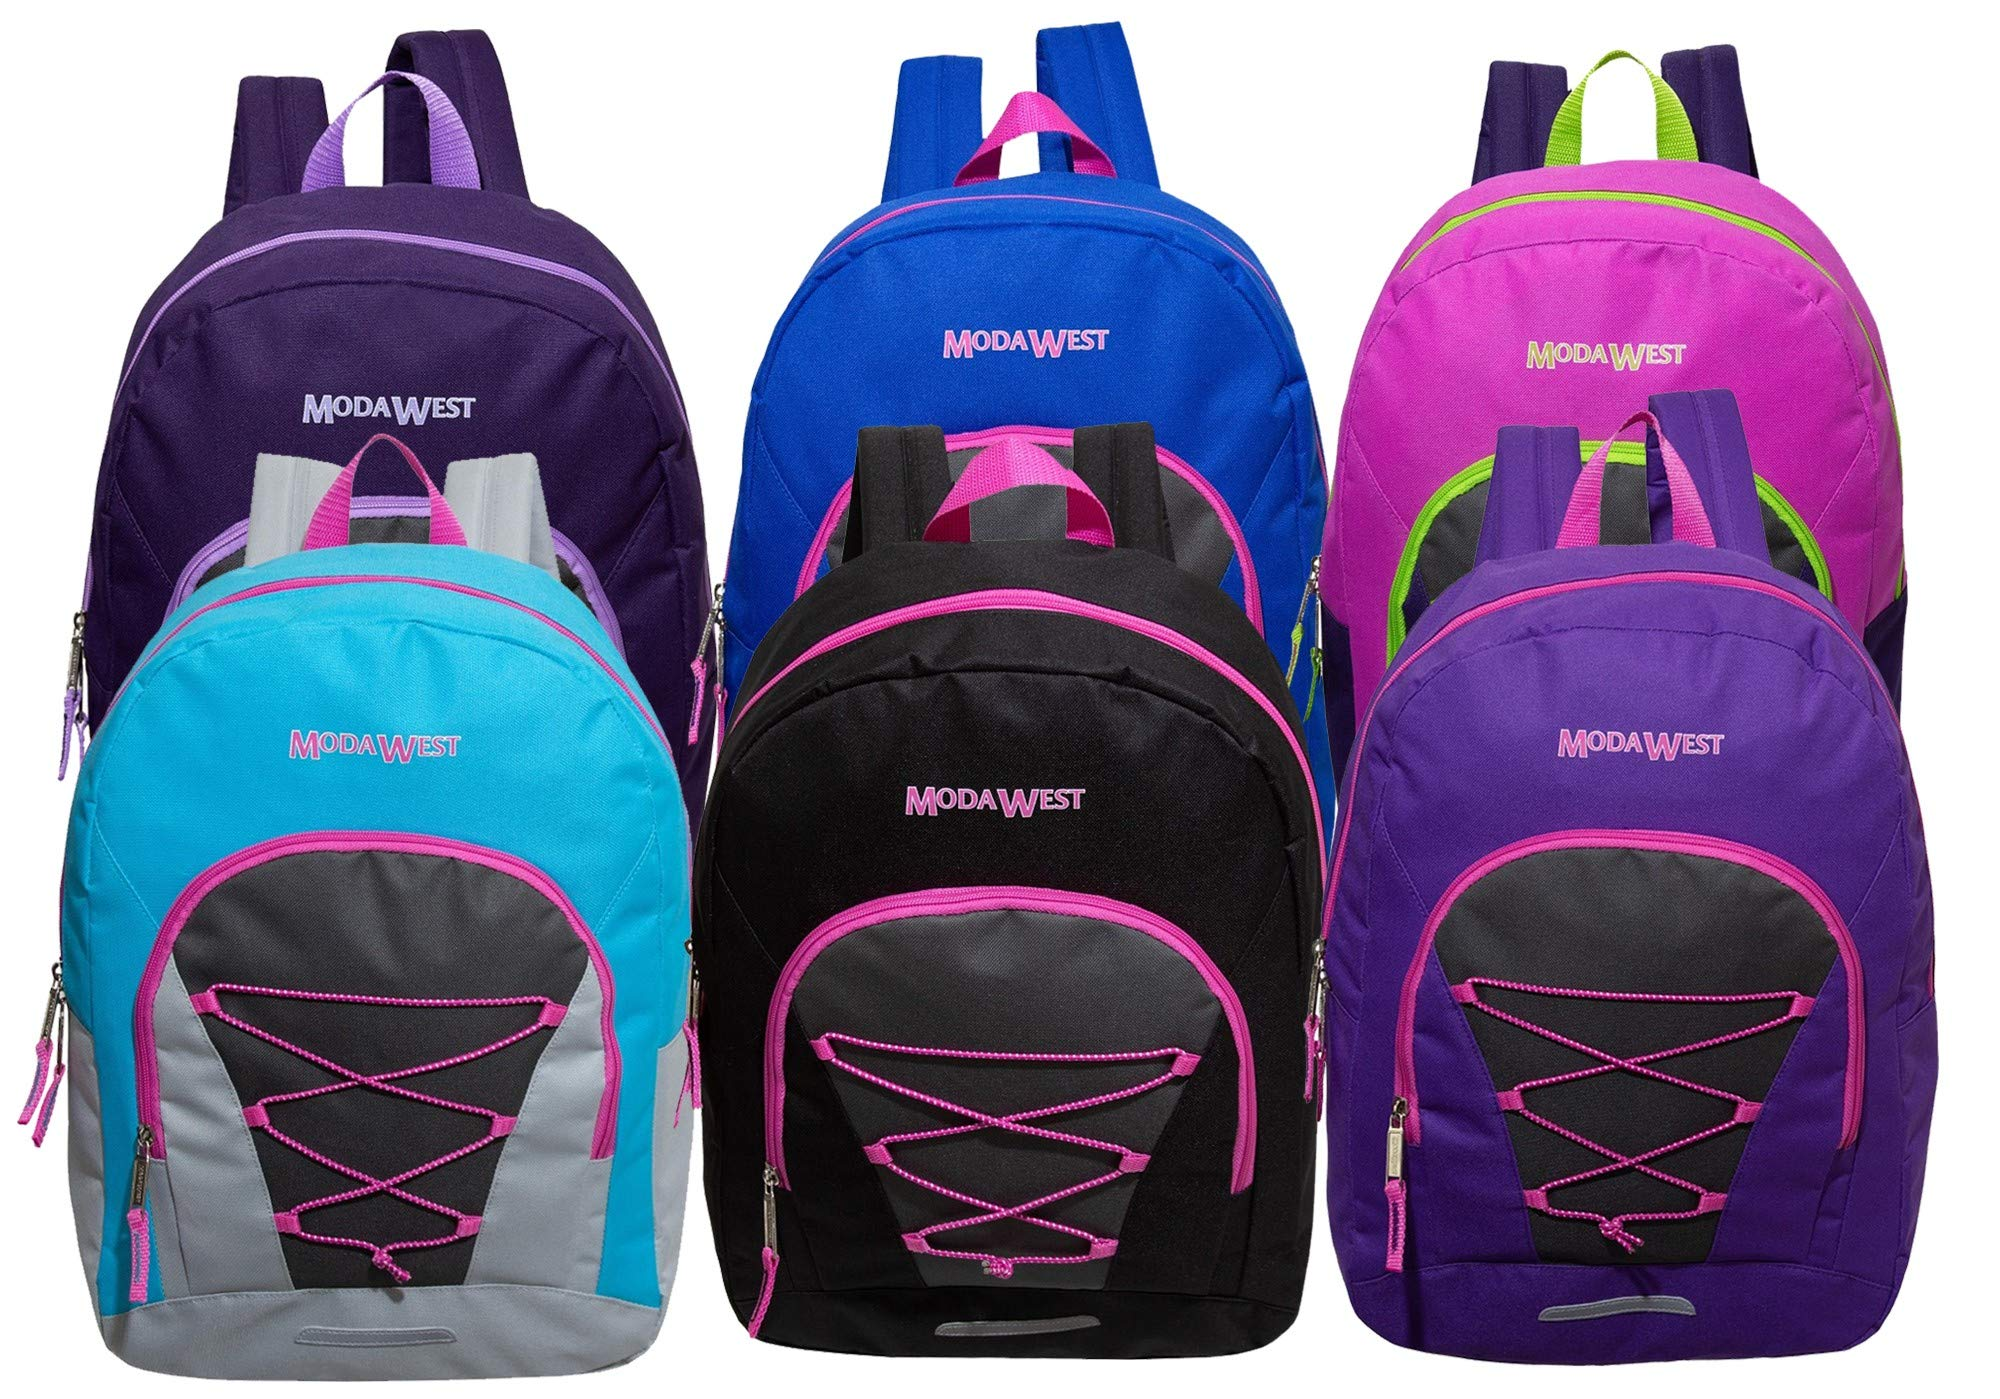 17 Inch Classic Wholesale Bungee Backpacks in Assorted Colors - Bulk Case of 24 Bookbags by Moda West